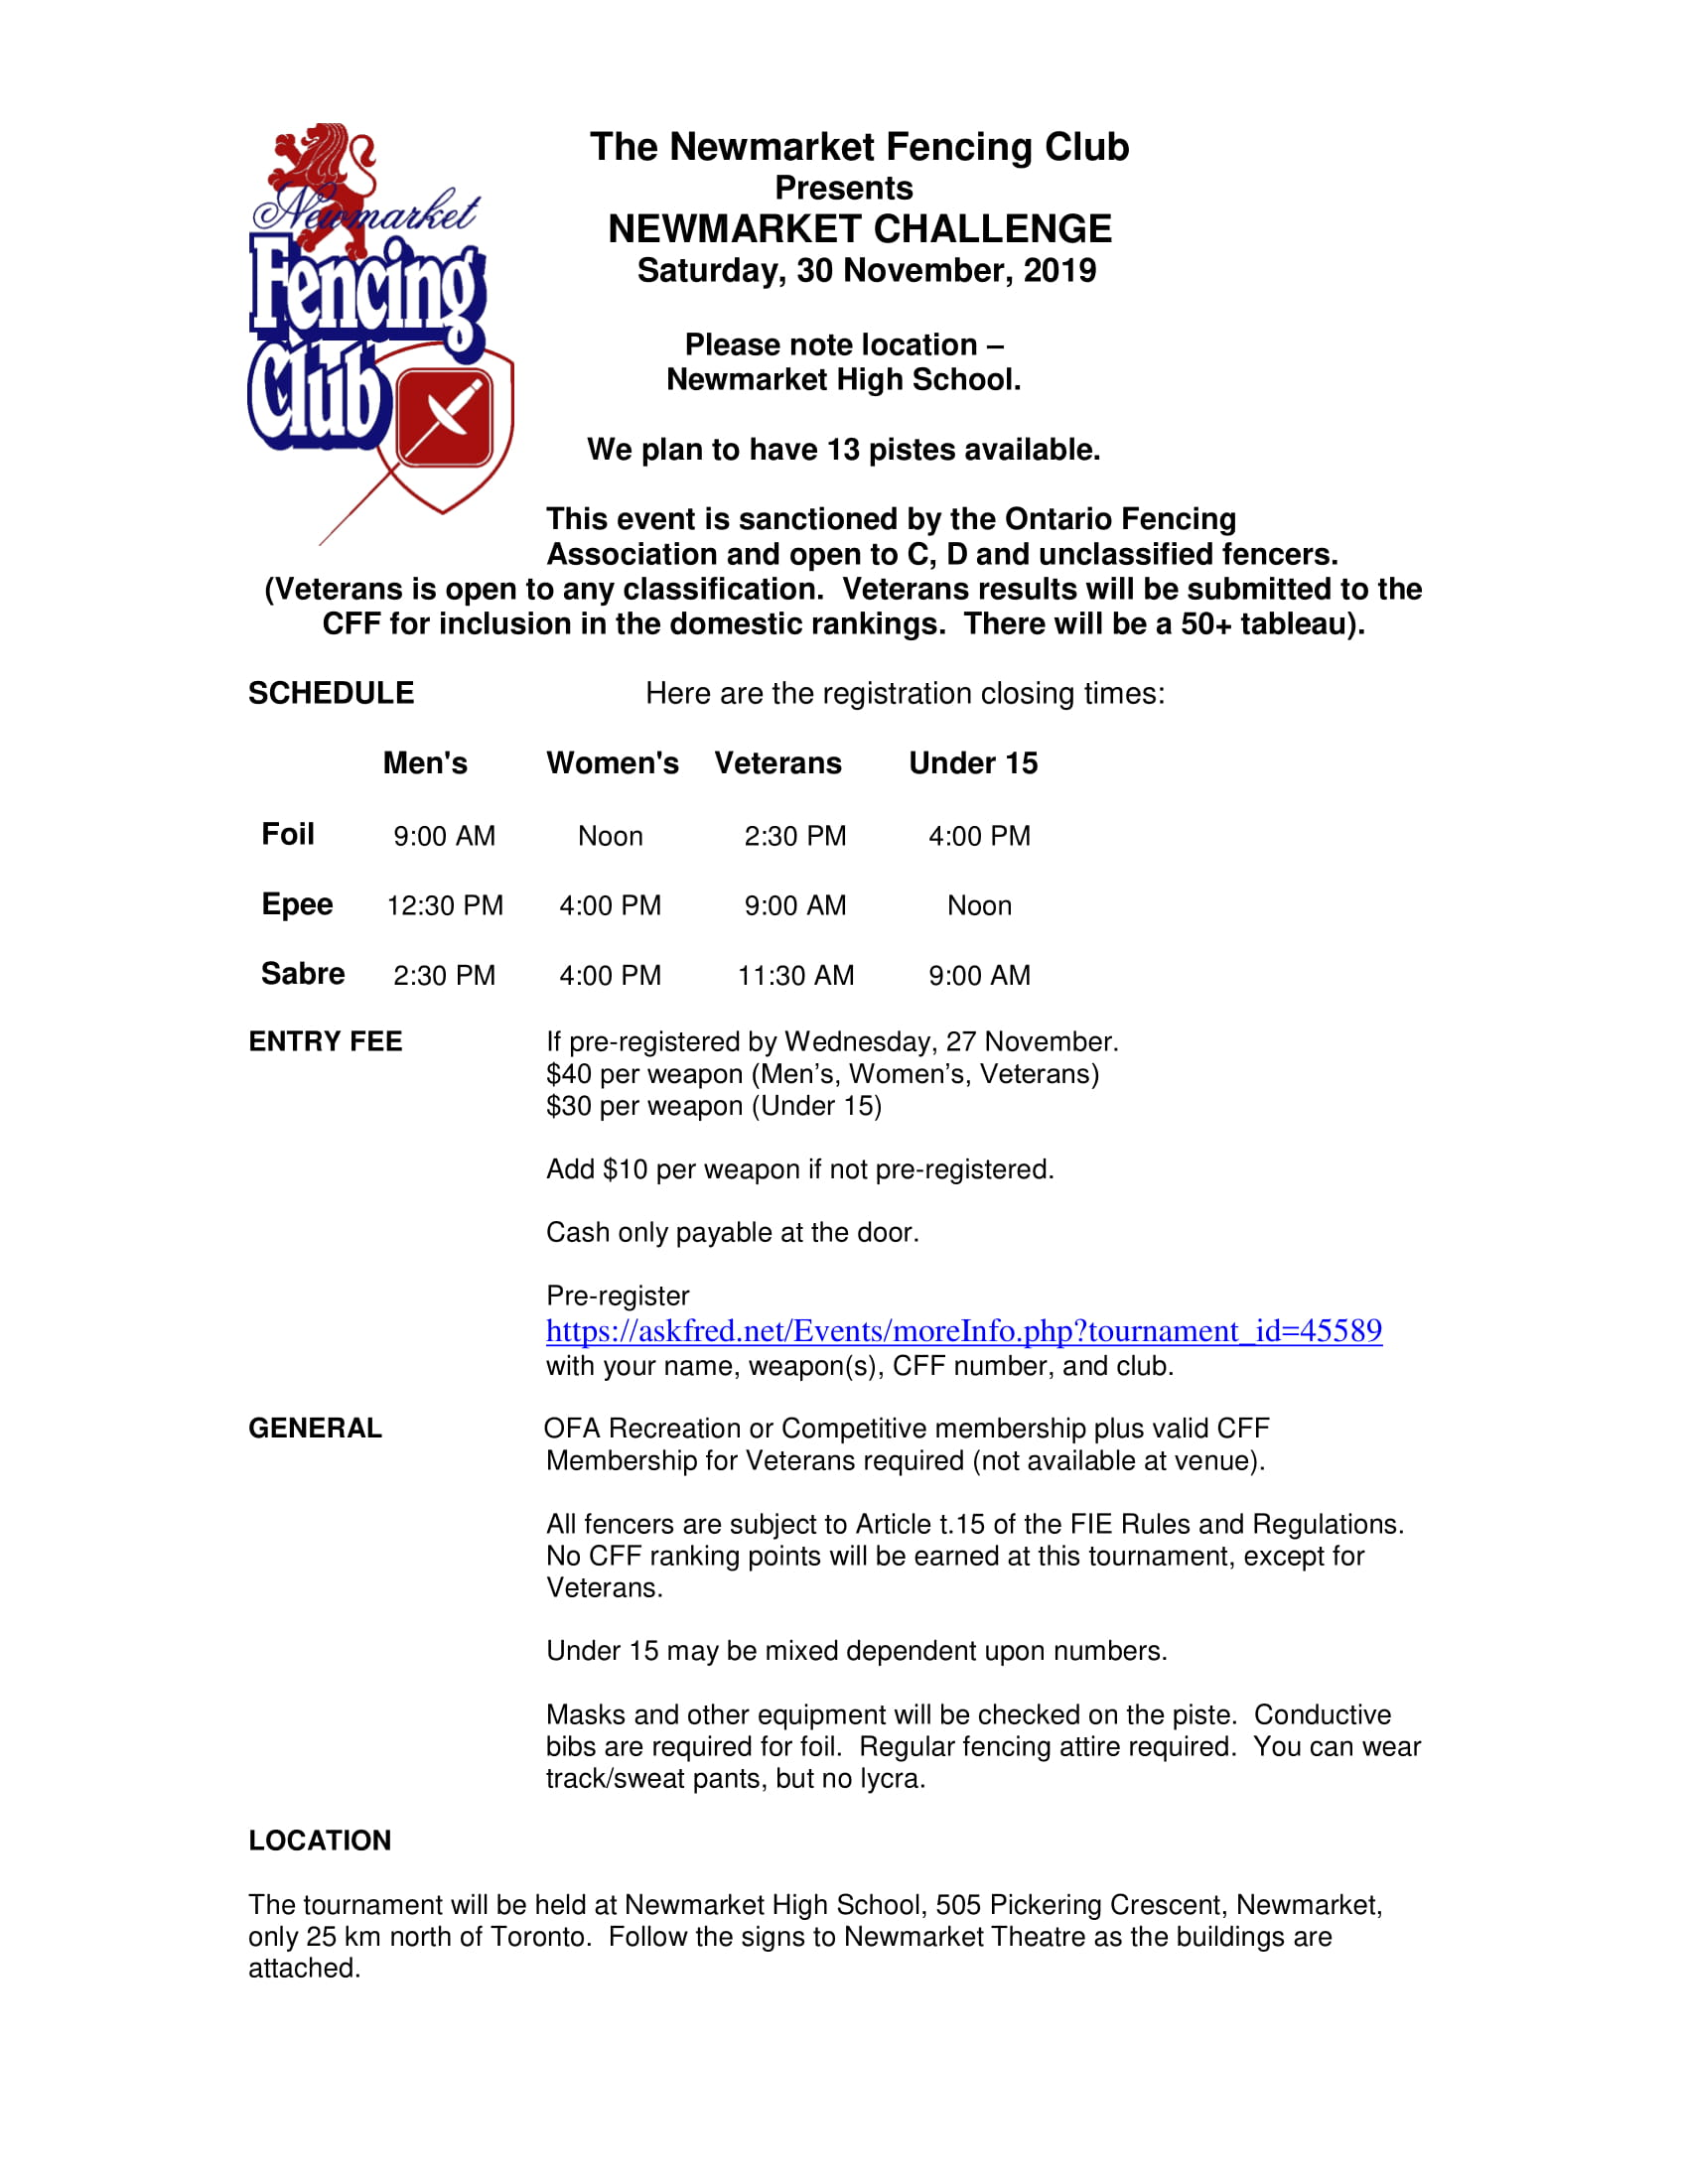 Newmarket Fencing Invitational (OWG Central Qualifier)